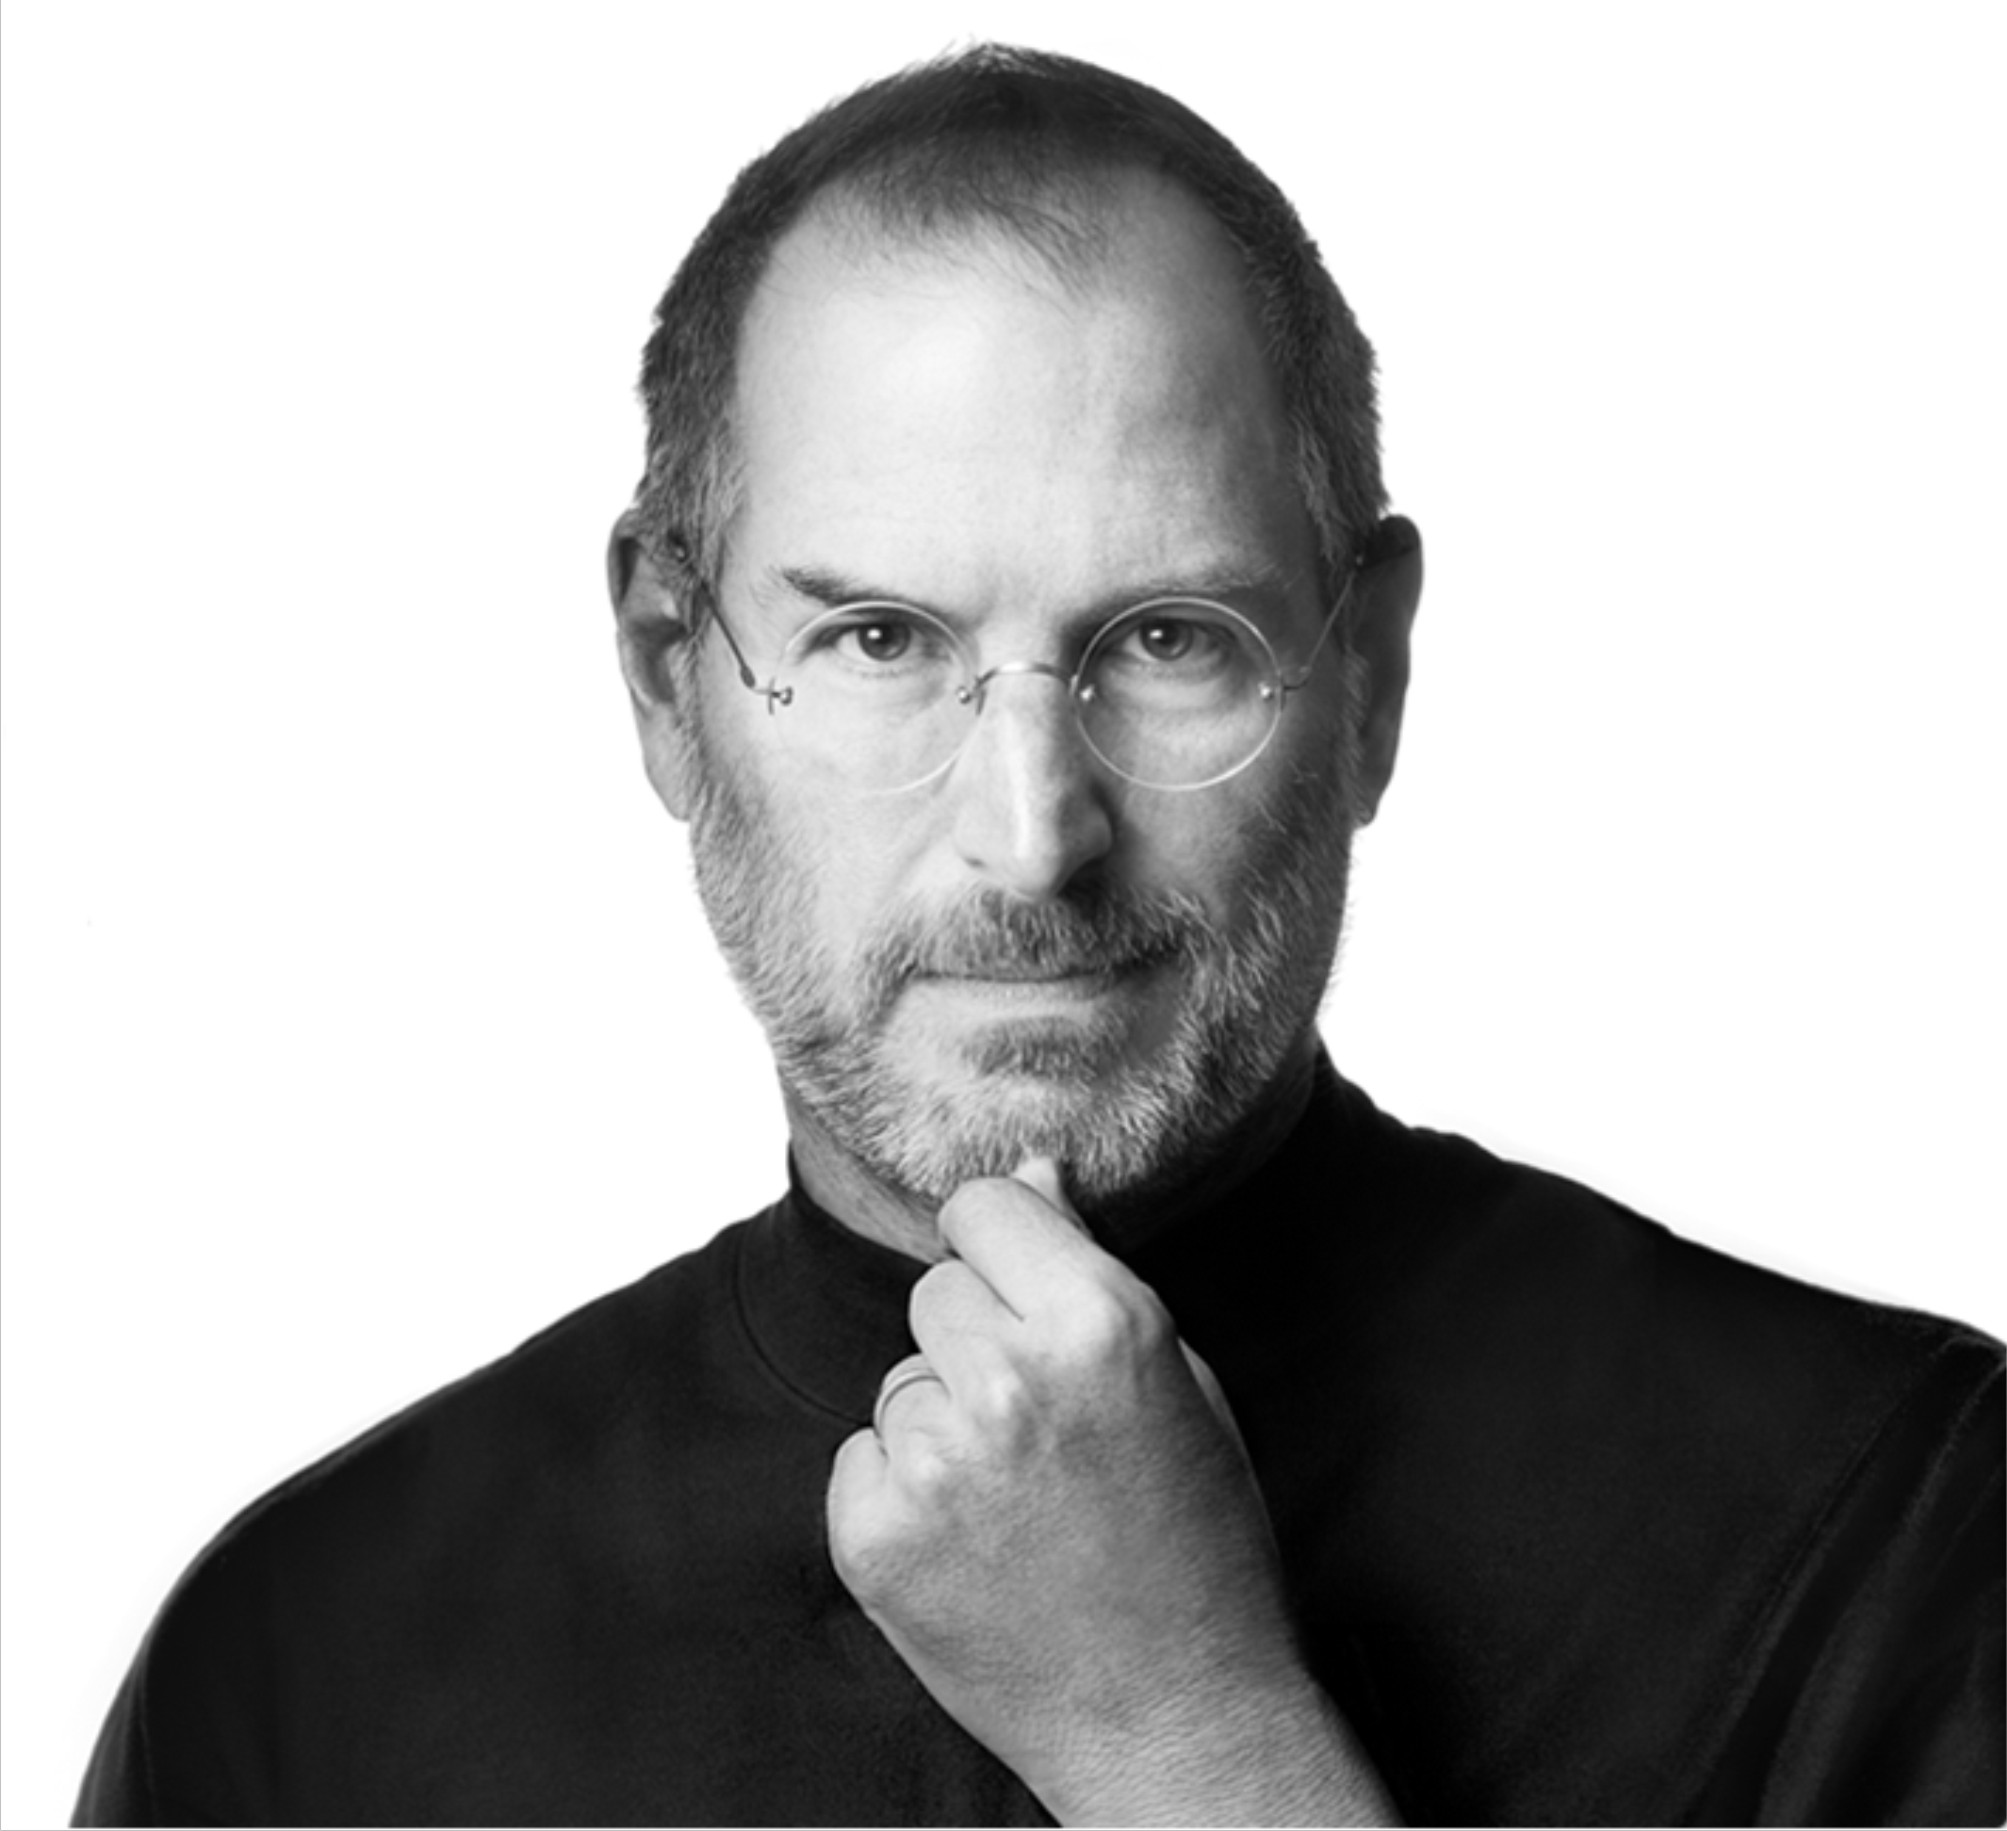 Morre Steve Jobs, fundador da Apple - E-COMMERCE Blog ...